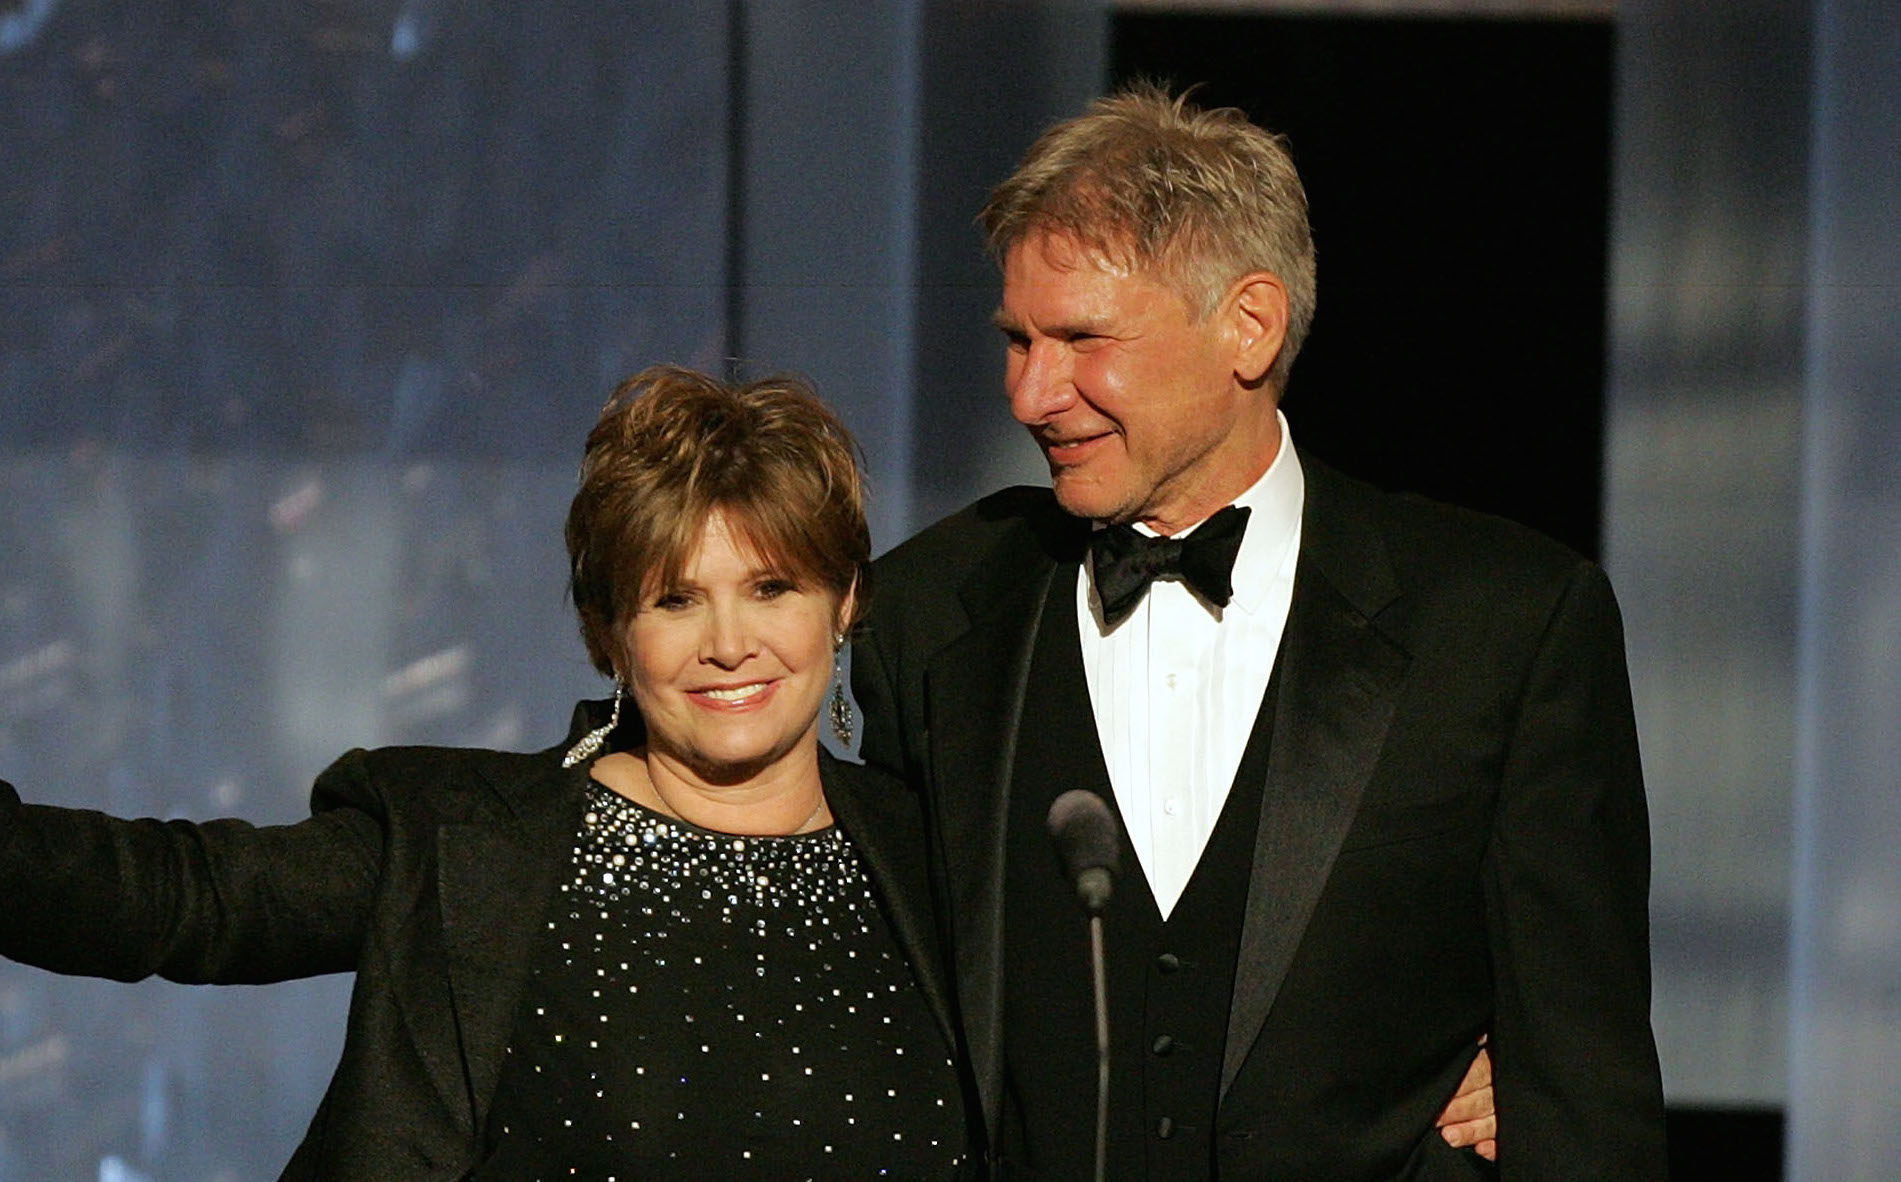 Harrison Ford's statement on Carrie Fisher's passing is so true to their relationship